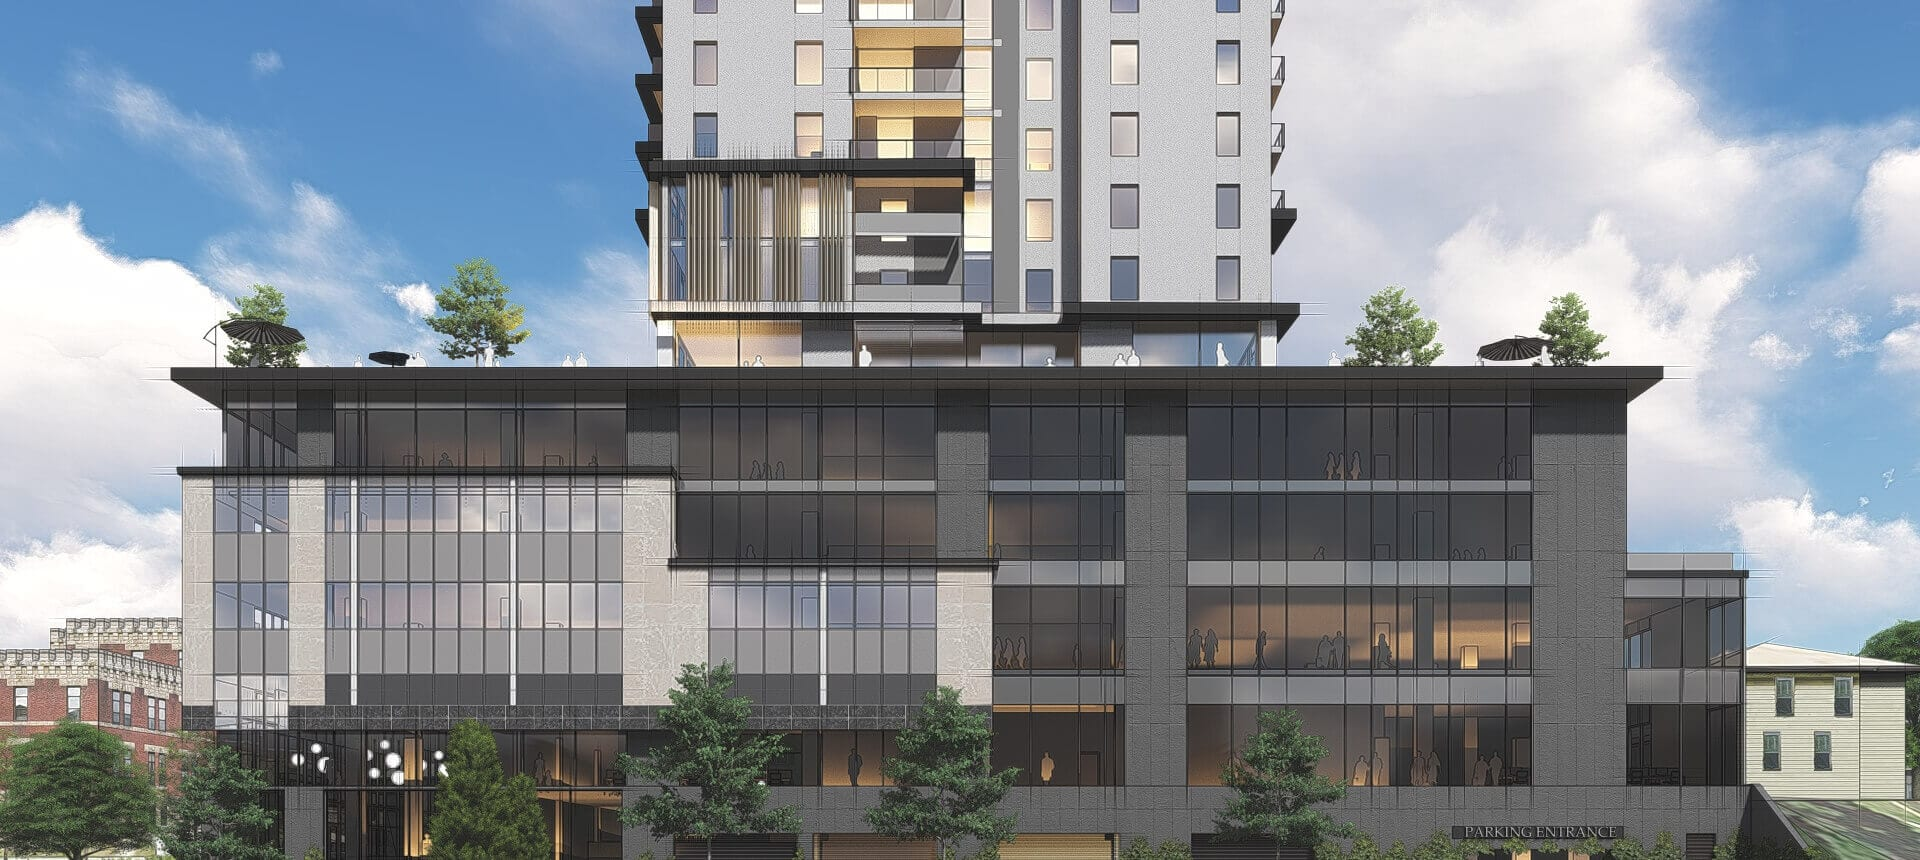 SkyDev front view rendering of 70 Fountain Street.